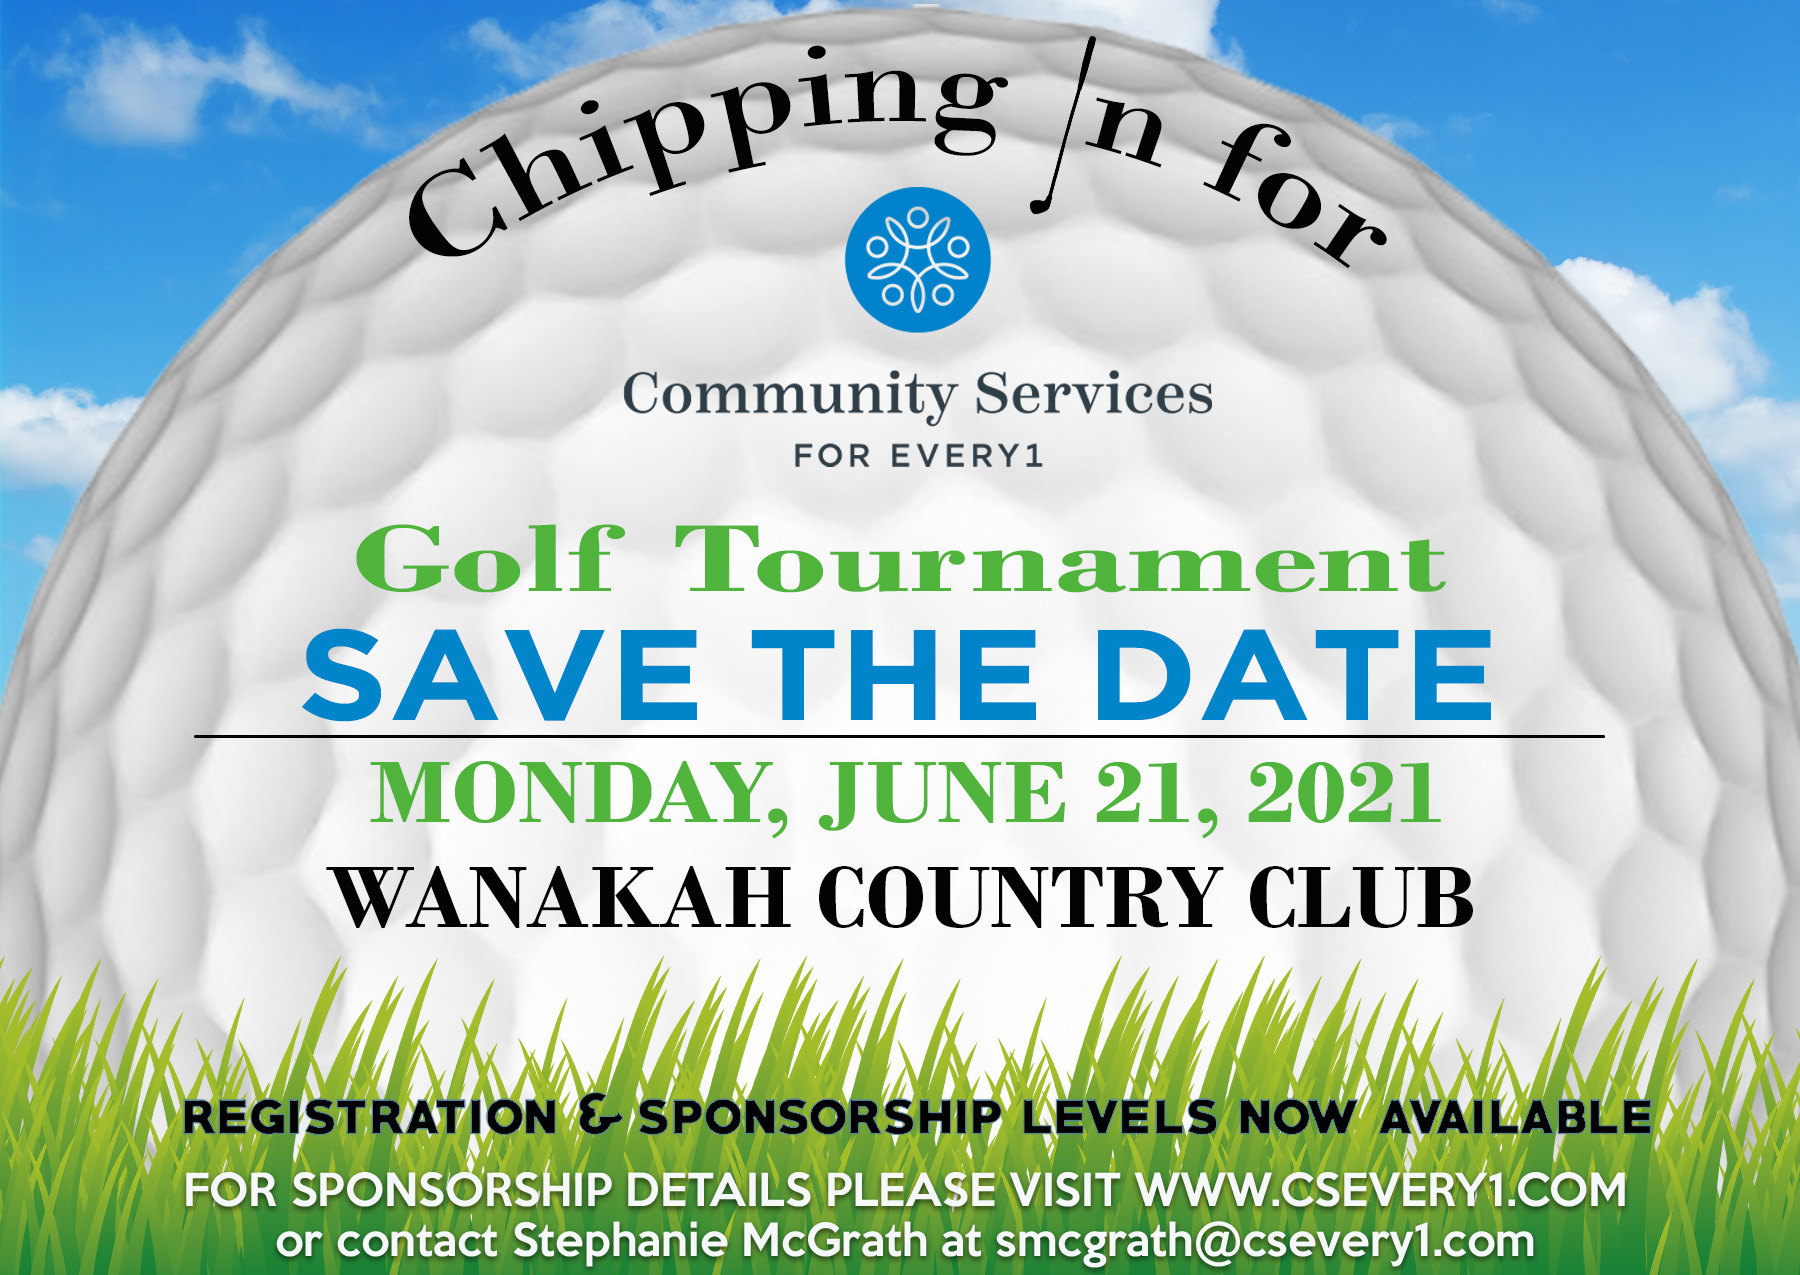 Golf Tournament Save the Date